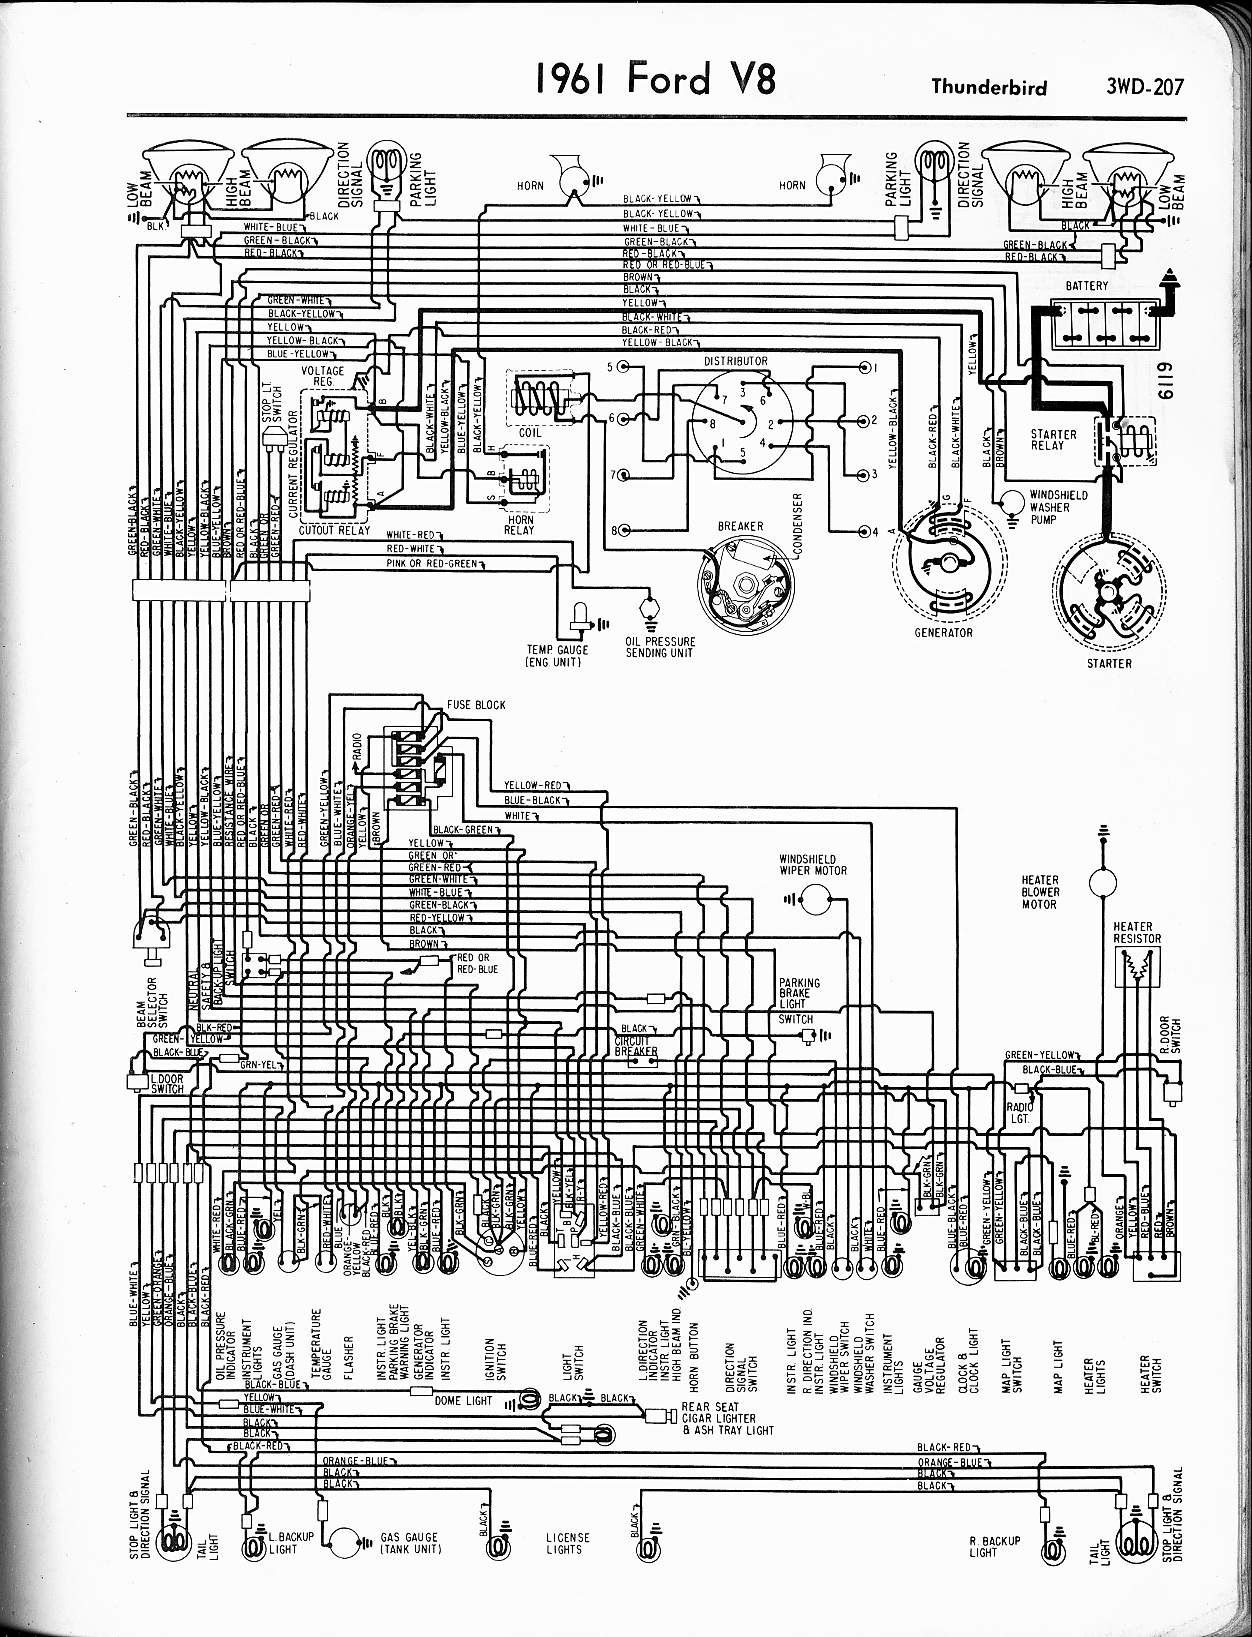 1955 Ford F100 Wiring Diagram Schematic Name Paint For 2003 Thunderbird Detailed